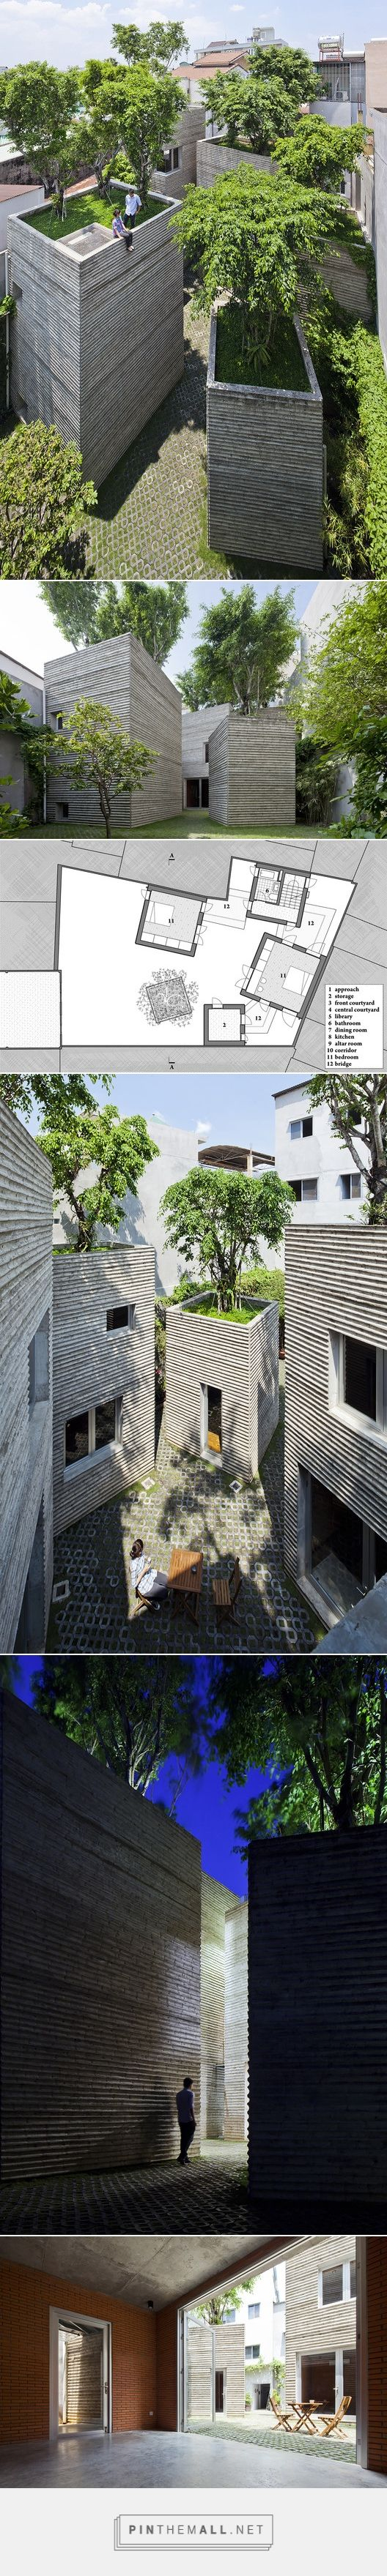 House for Trees / Vo Trong Nghia Architects | ArchDaily